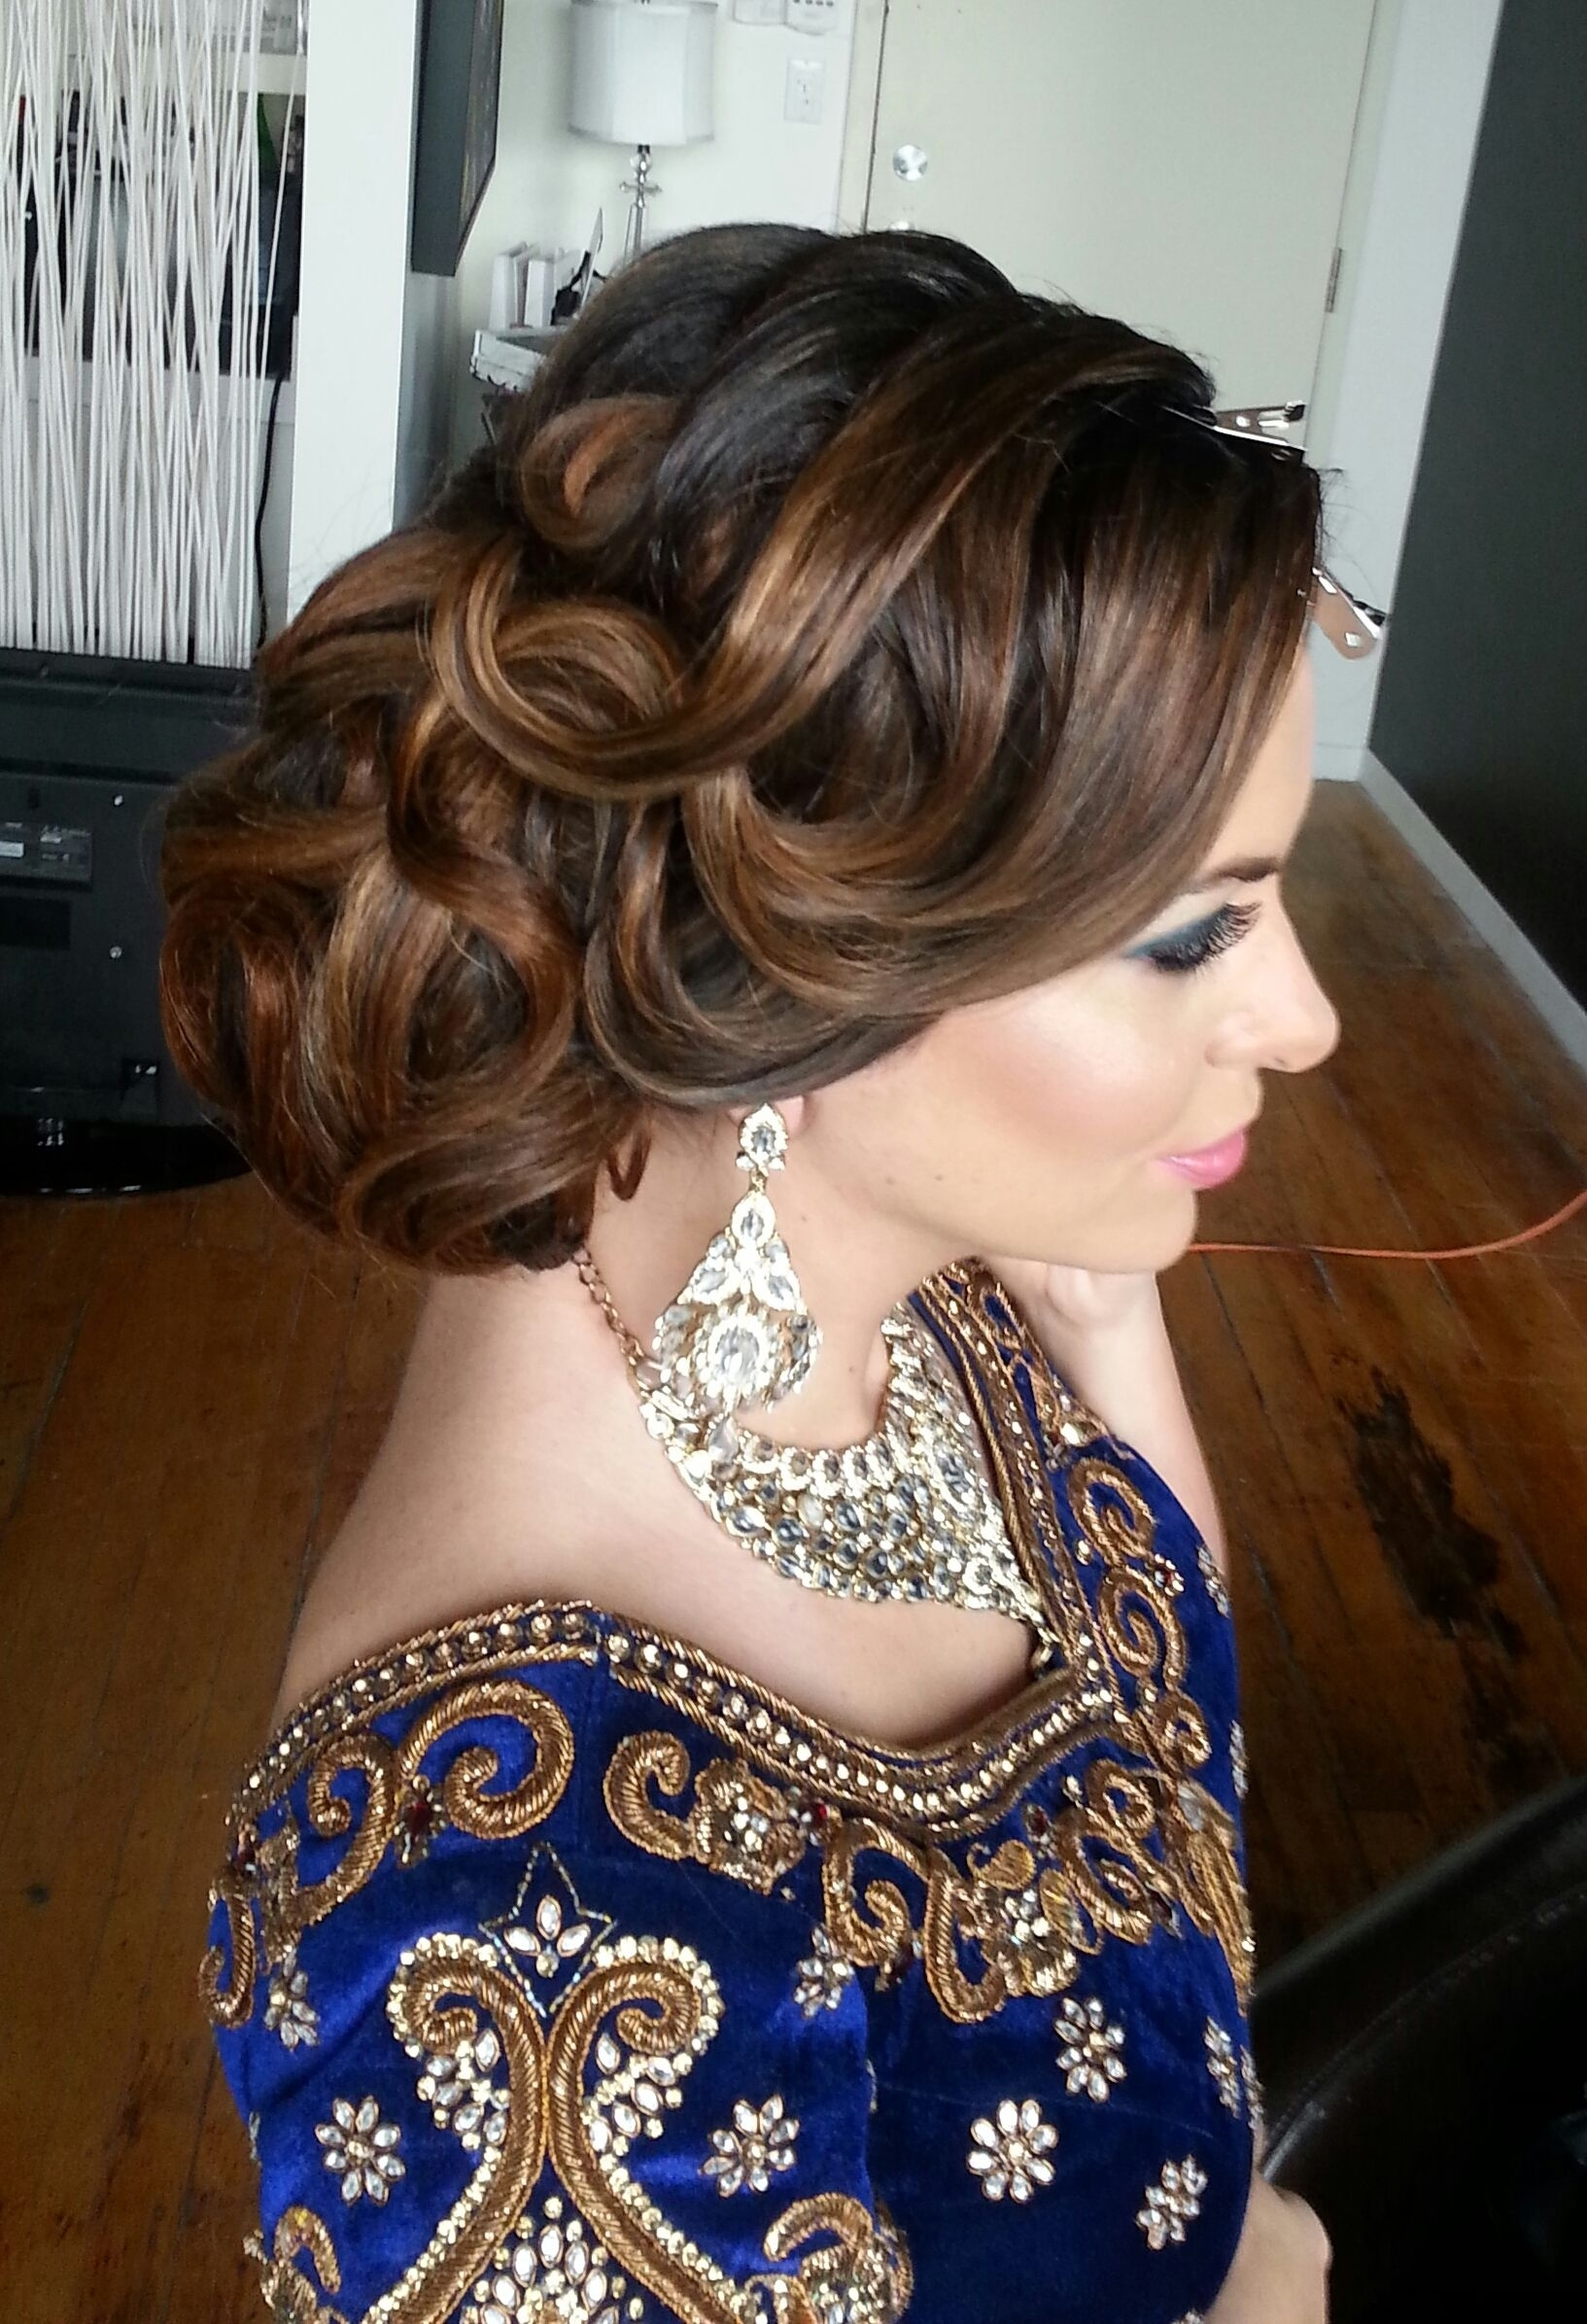 16 Glamorous Indian Wedding Hairstyles   Hairstyles   Wedding Guest with regard to Superb Asian Bridal Hairstyles For Long Hair